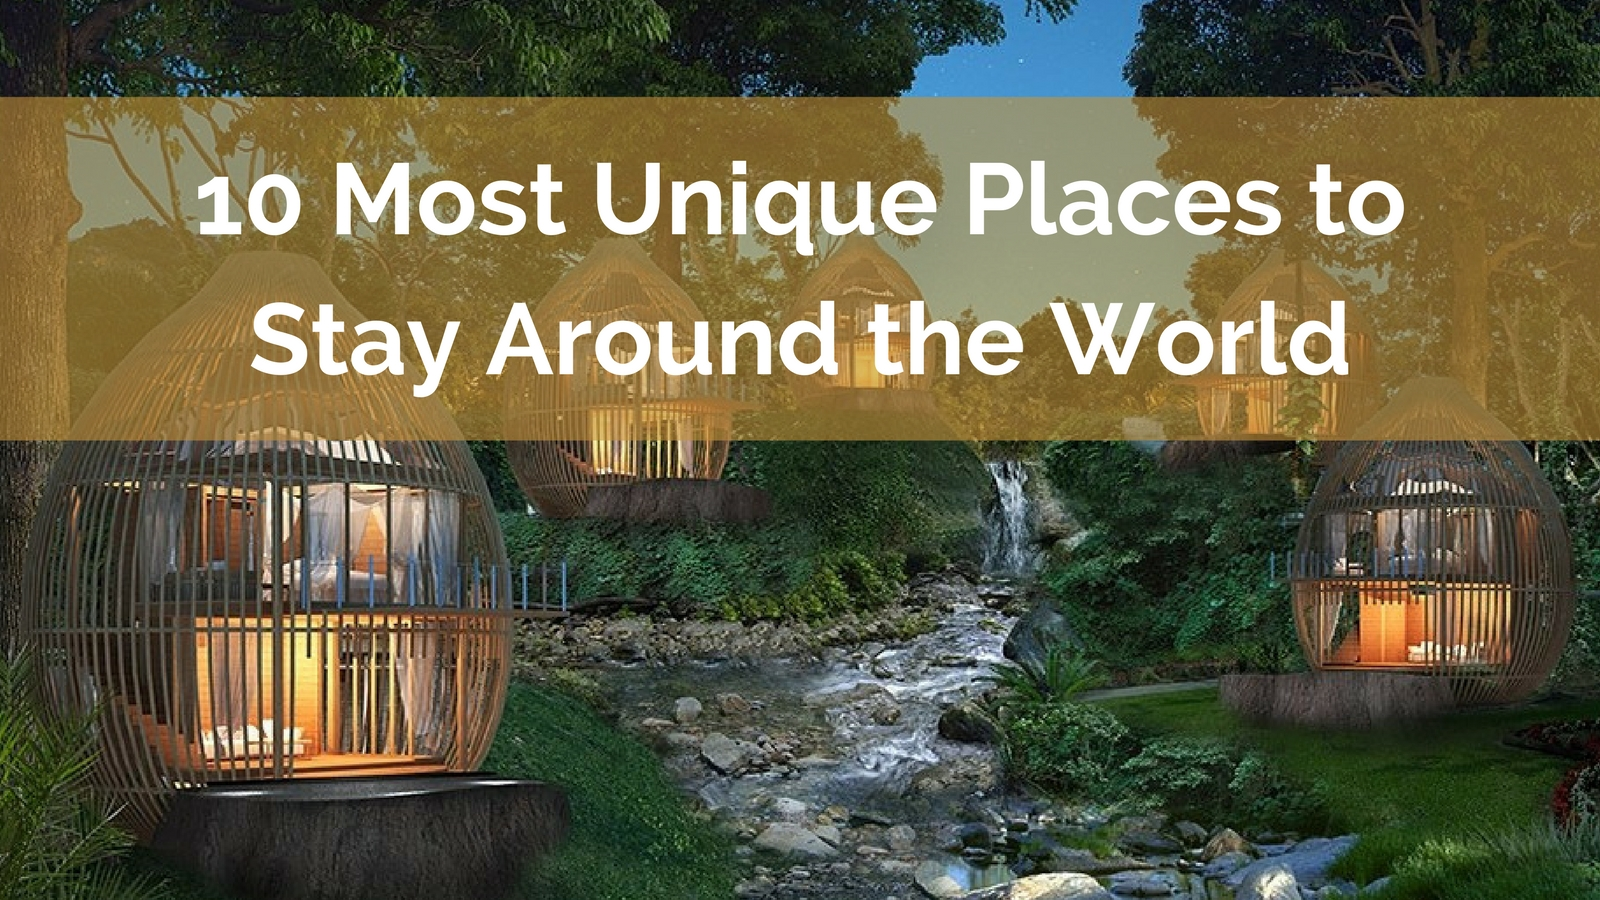 10 Most Unique Places to Stay Around the World